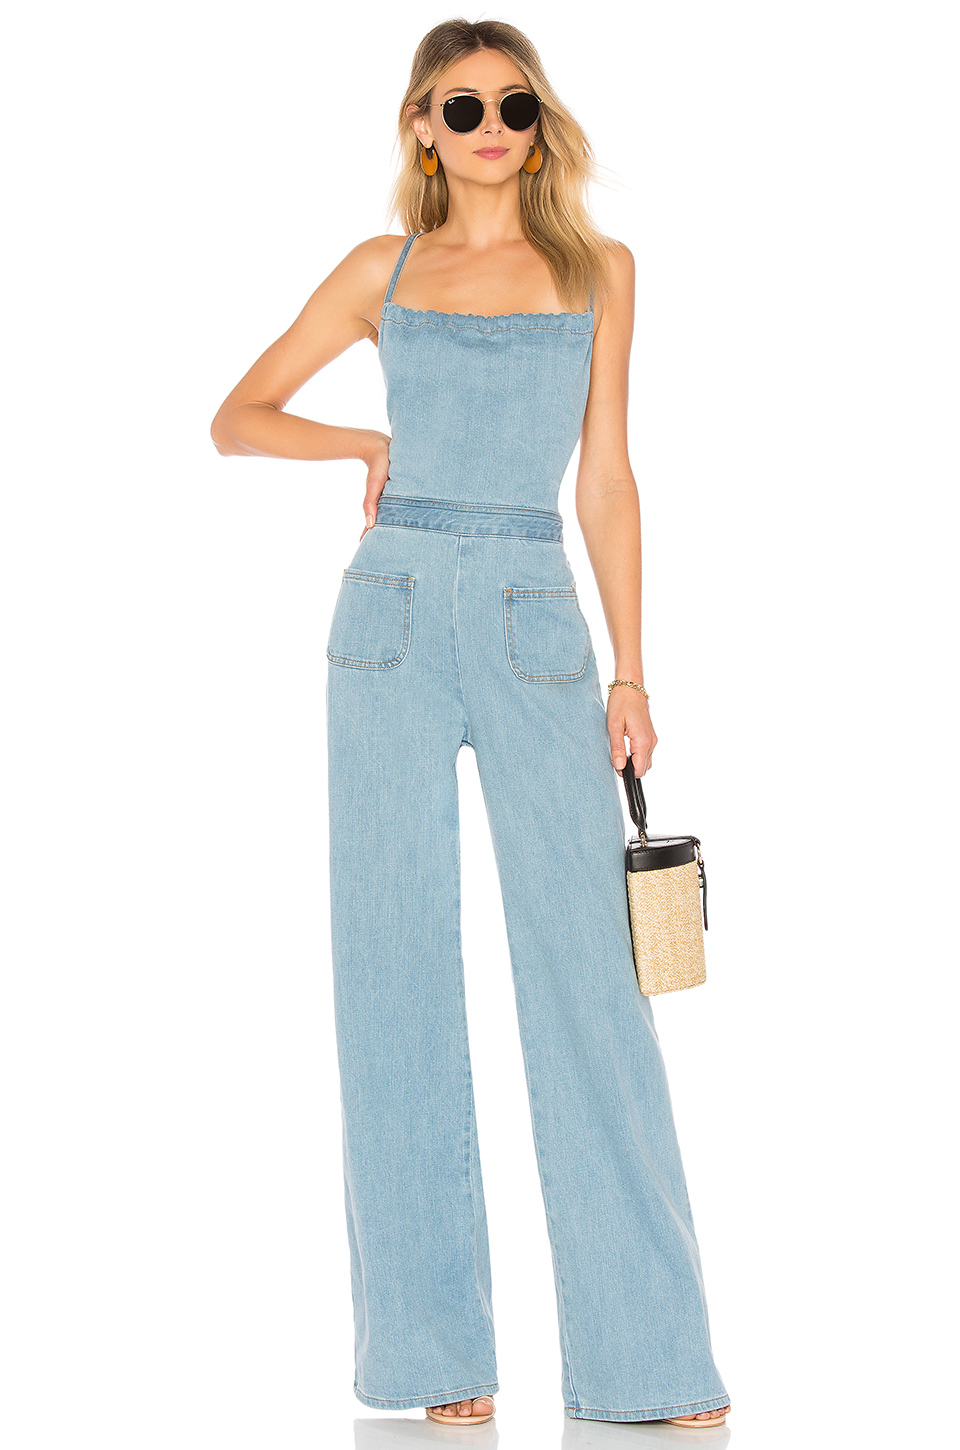 fbe24e8763c7 Stoned Immaculate Jean Genie Jumpsuit  Stoned Immaculate Jean Genie Jumpsuit  ...